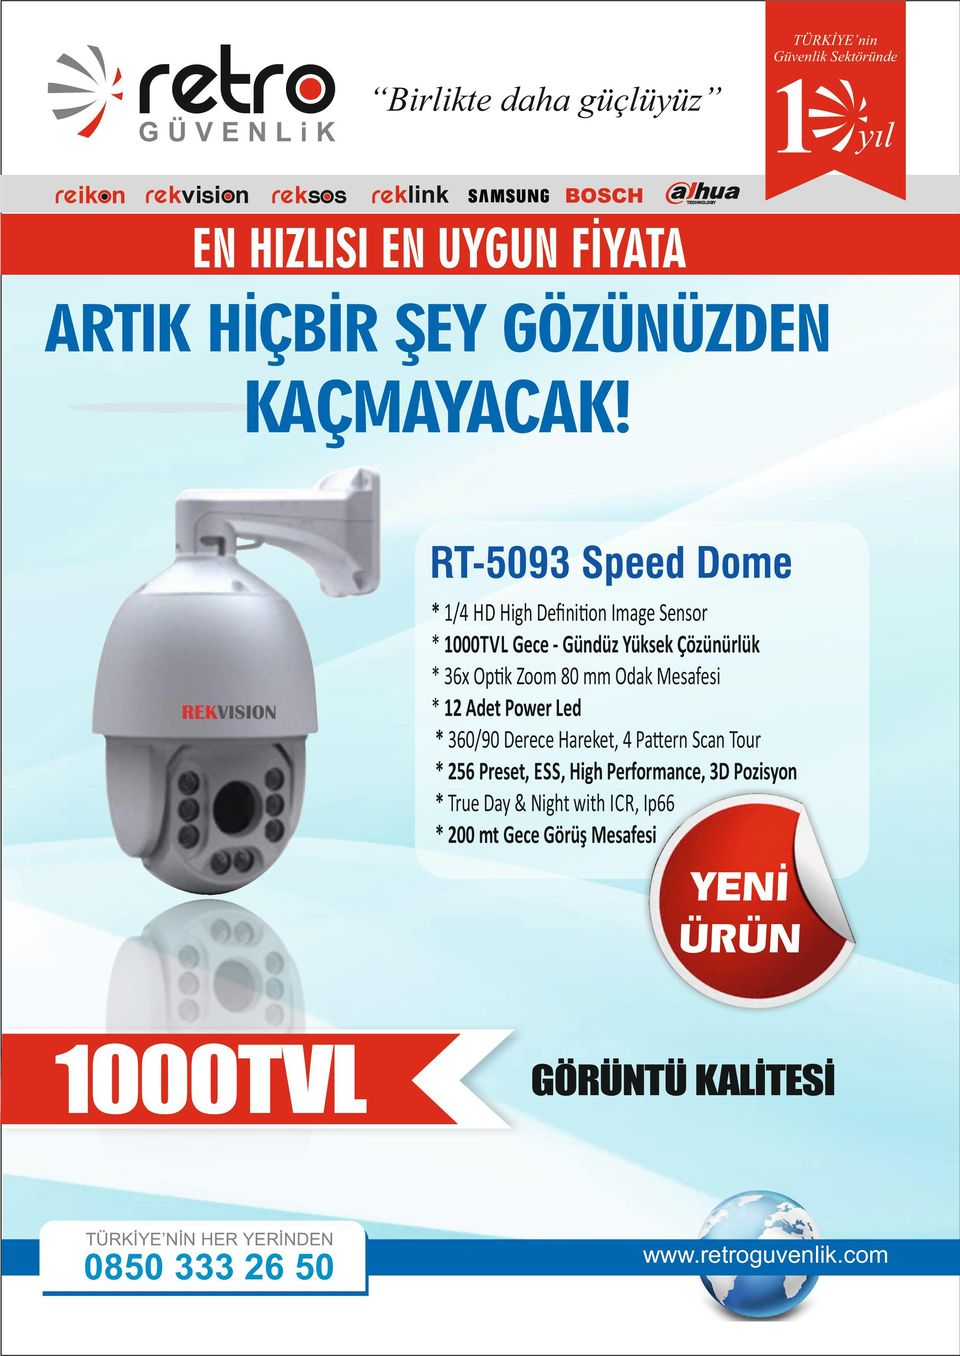 Mesafesi * 12 Adet Power Led * 360/90 Derece Hareket, 4 Pa ern Scan Tour * 256 Preset, ESS, High Performance, 3D Pozisyon * True